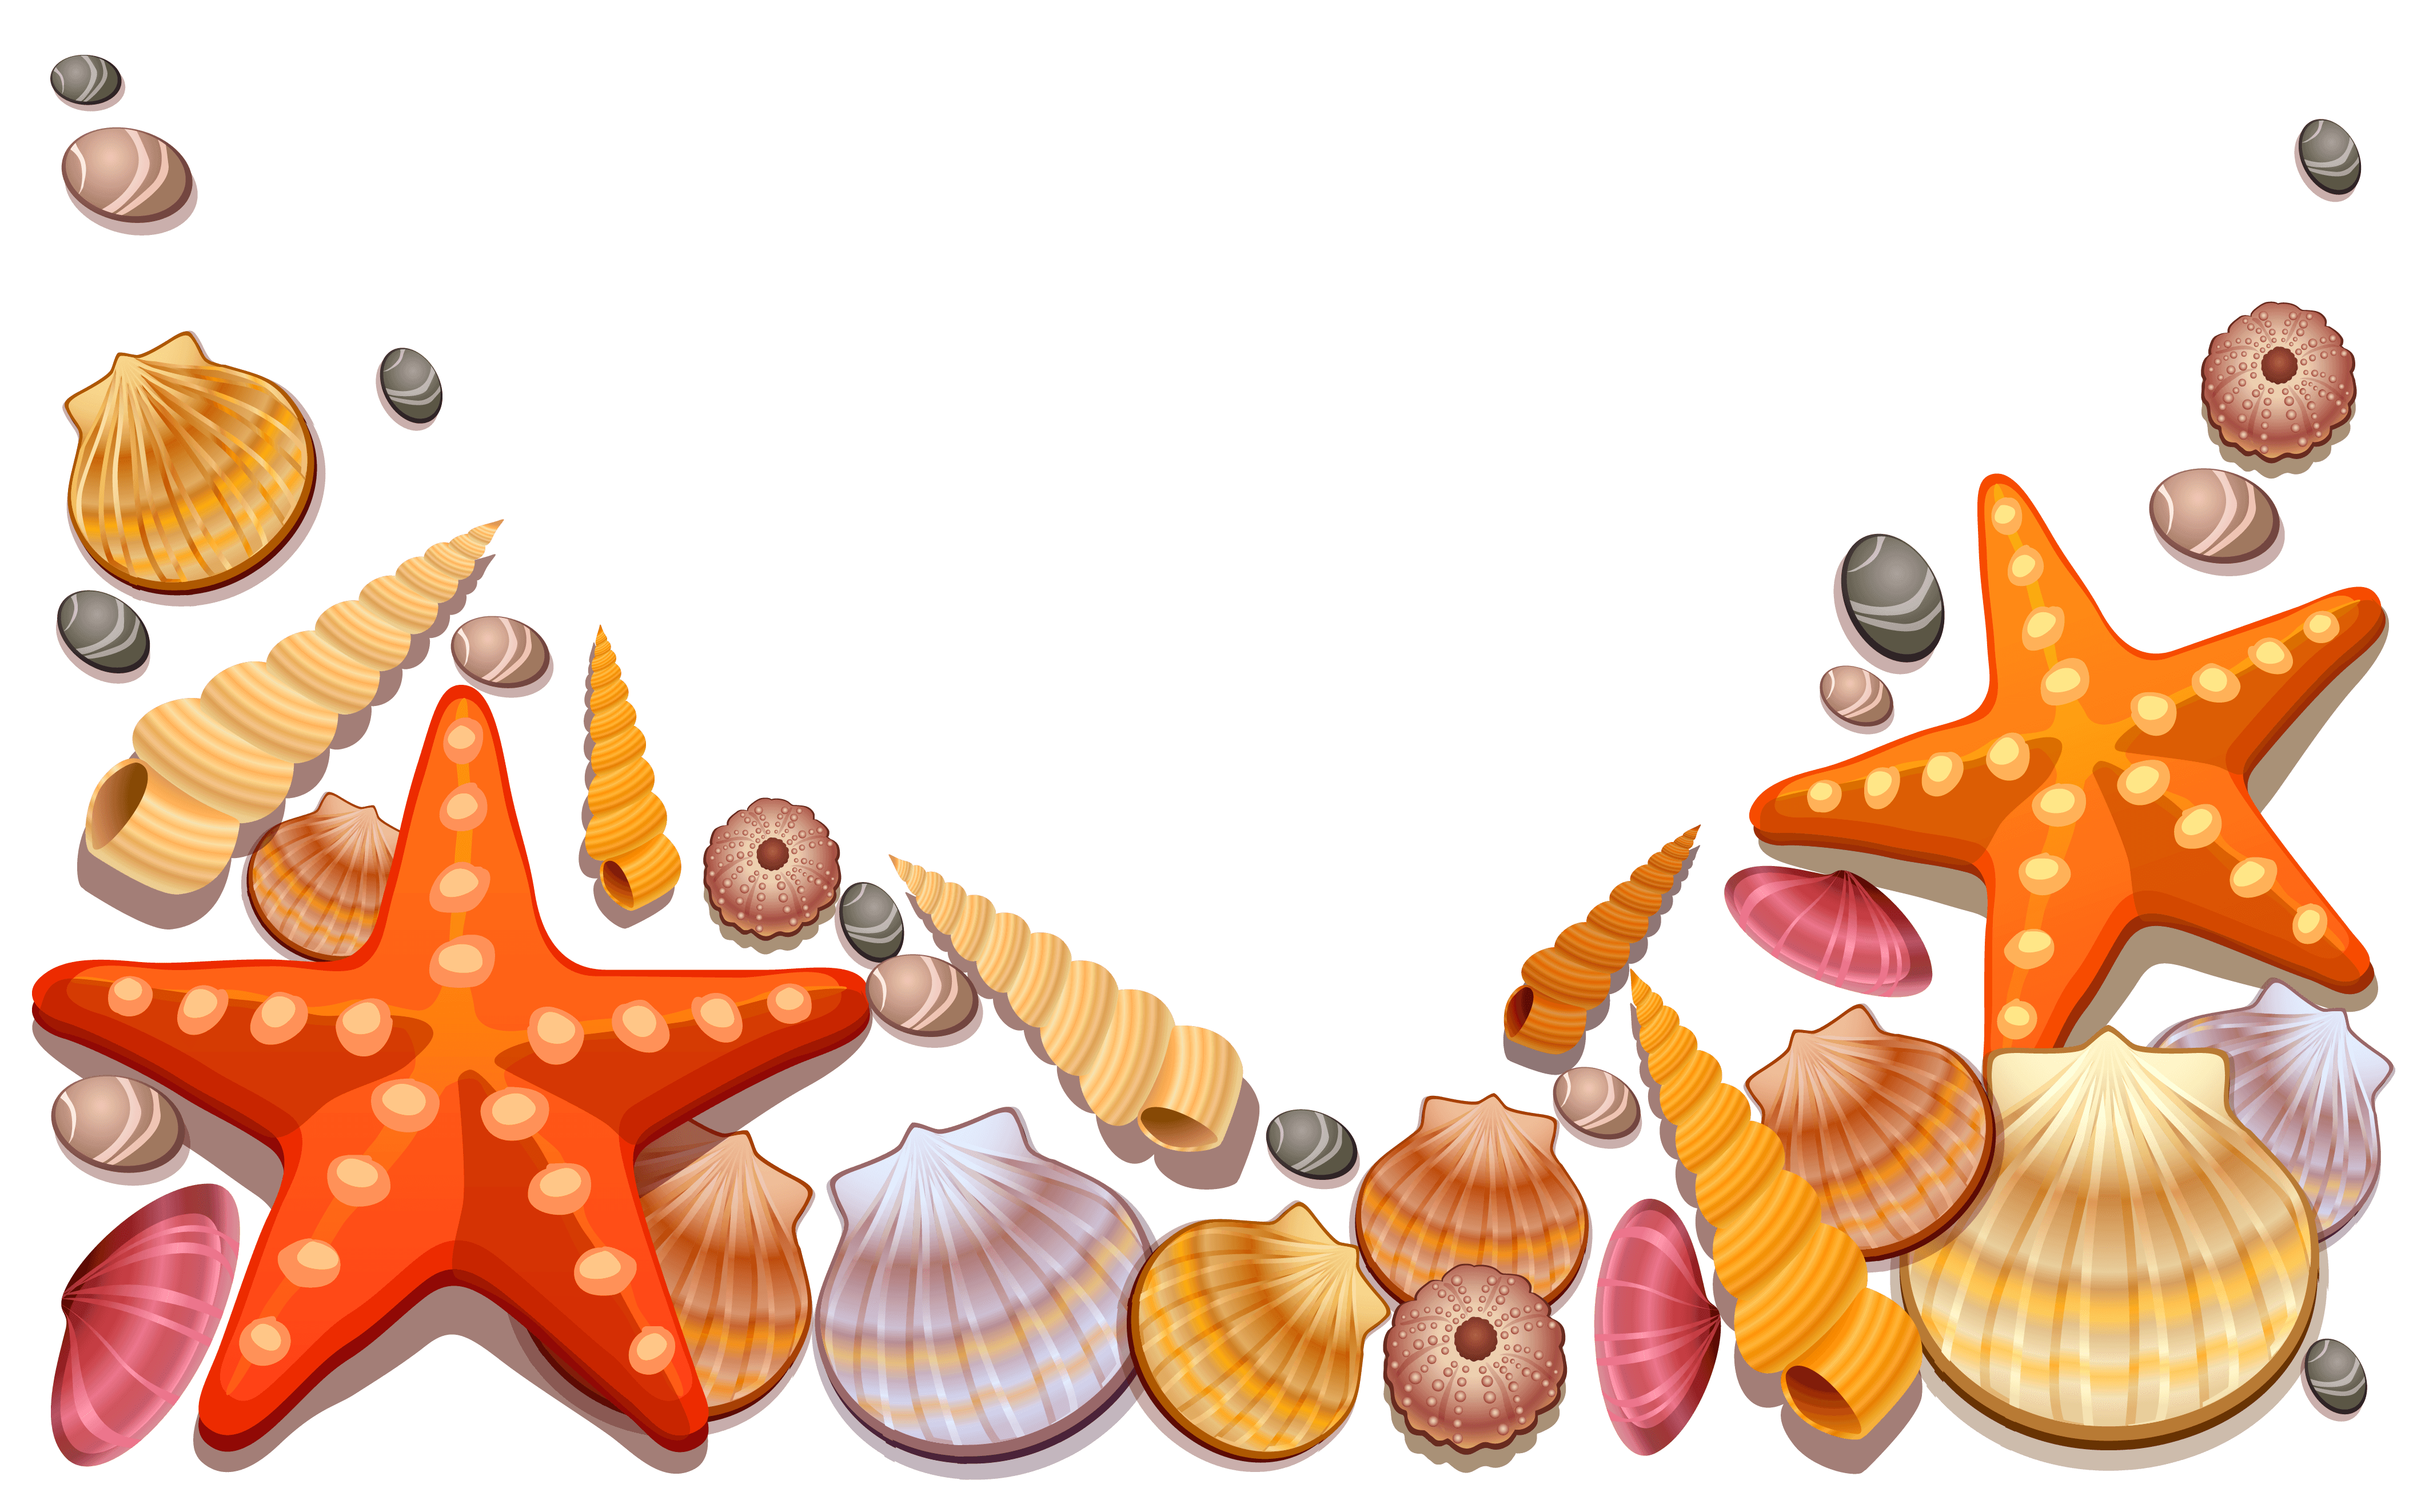 Shell clipart starfish wedding. Conch at getdrawings com